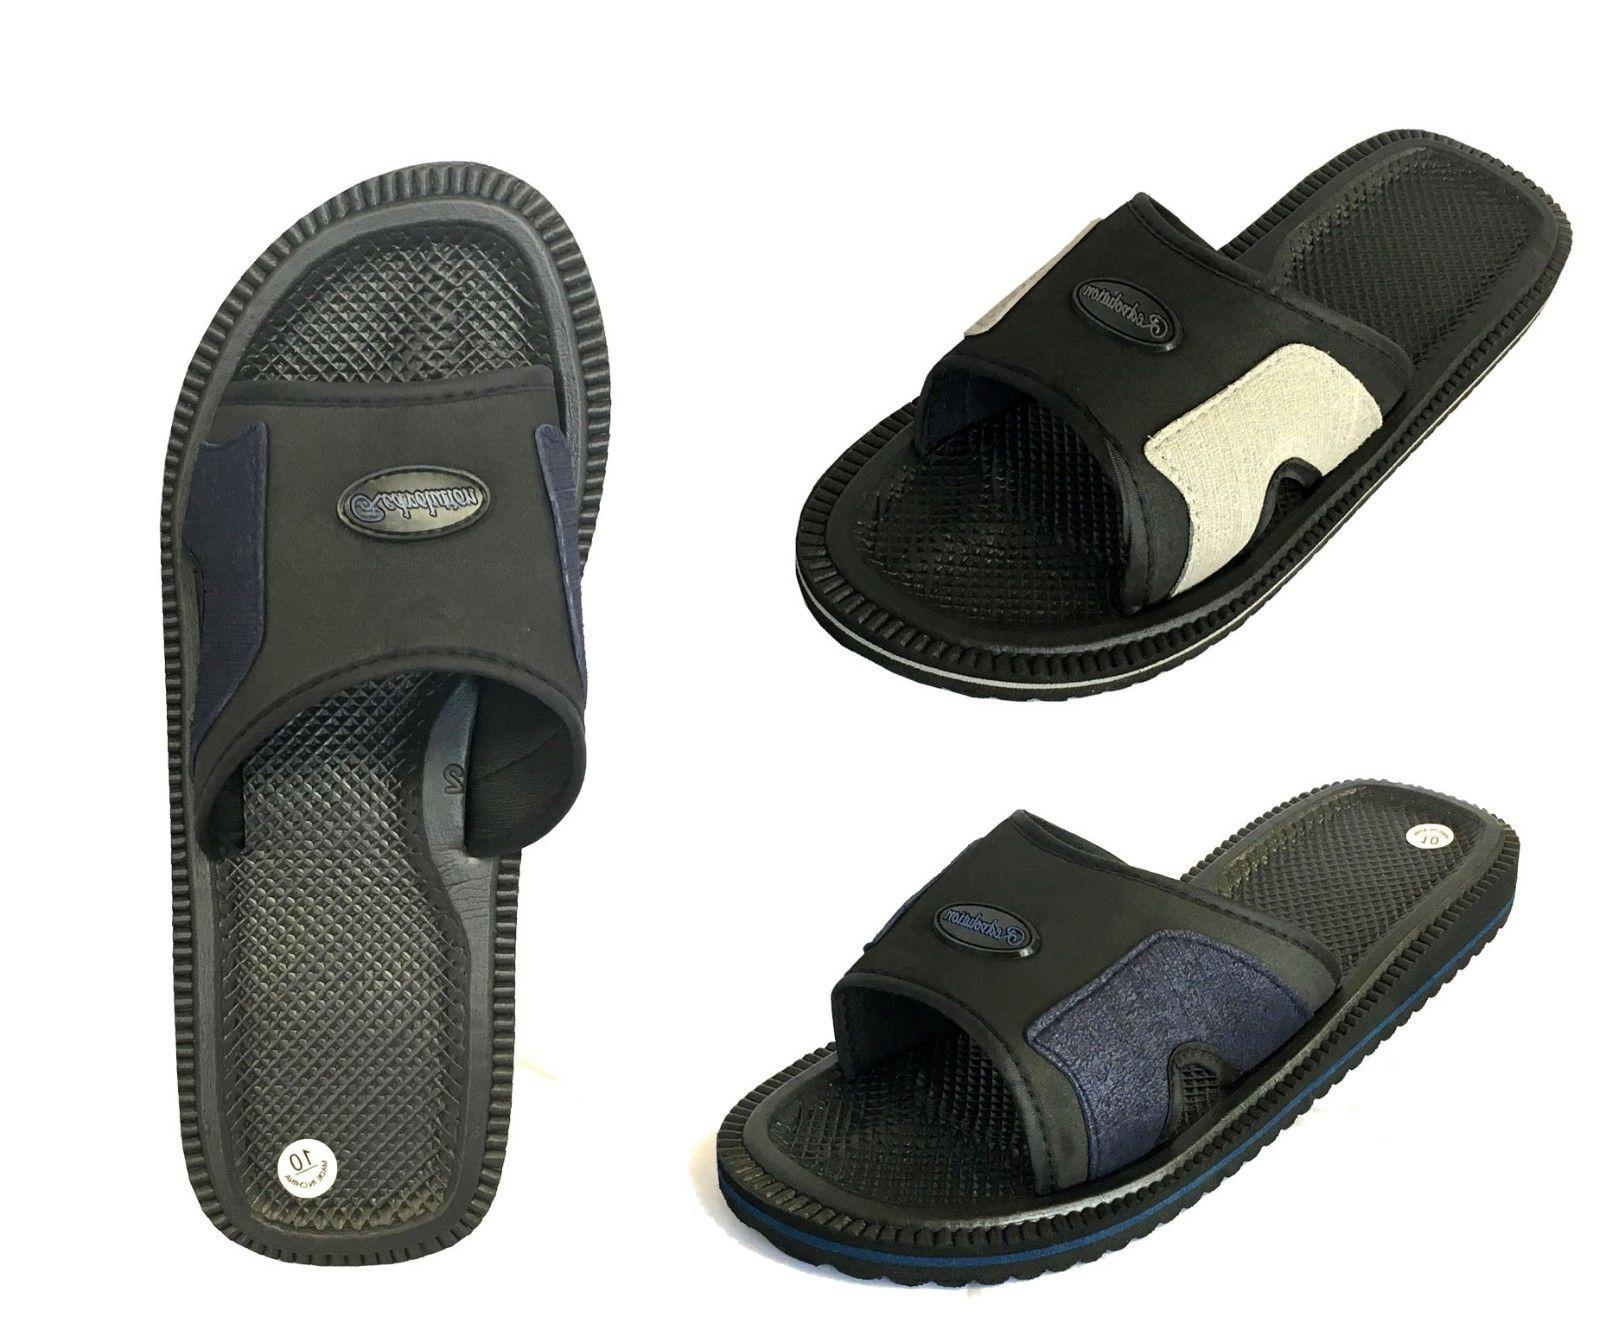 new women s sports slide sandals